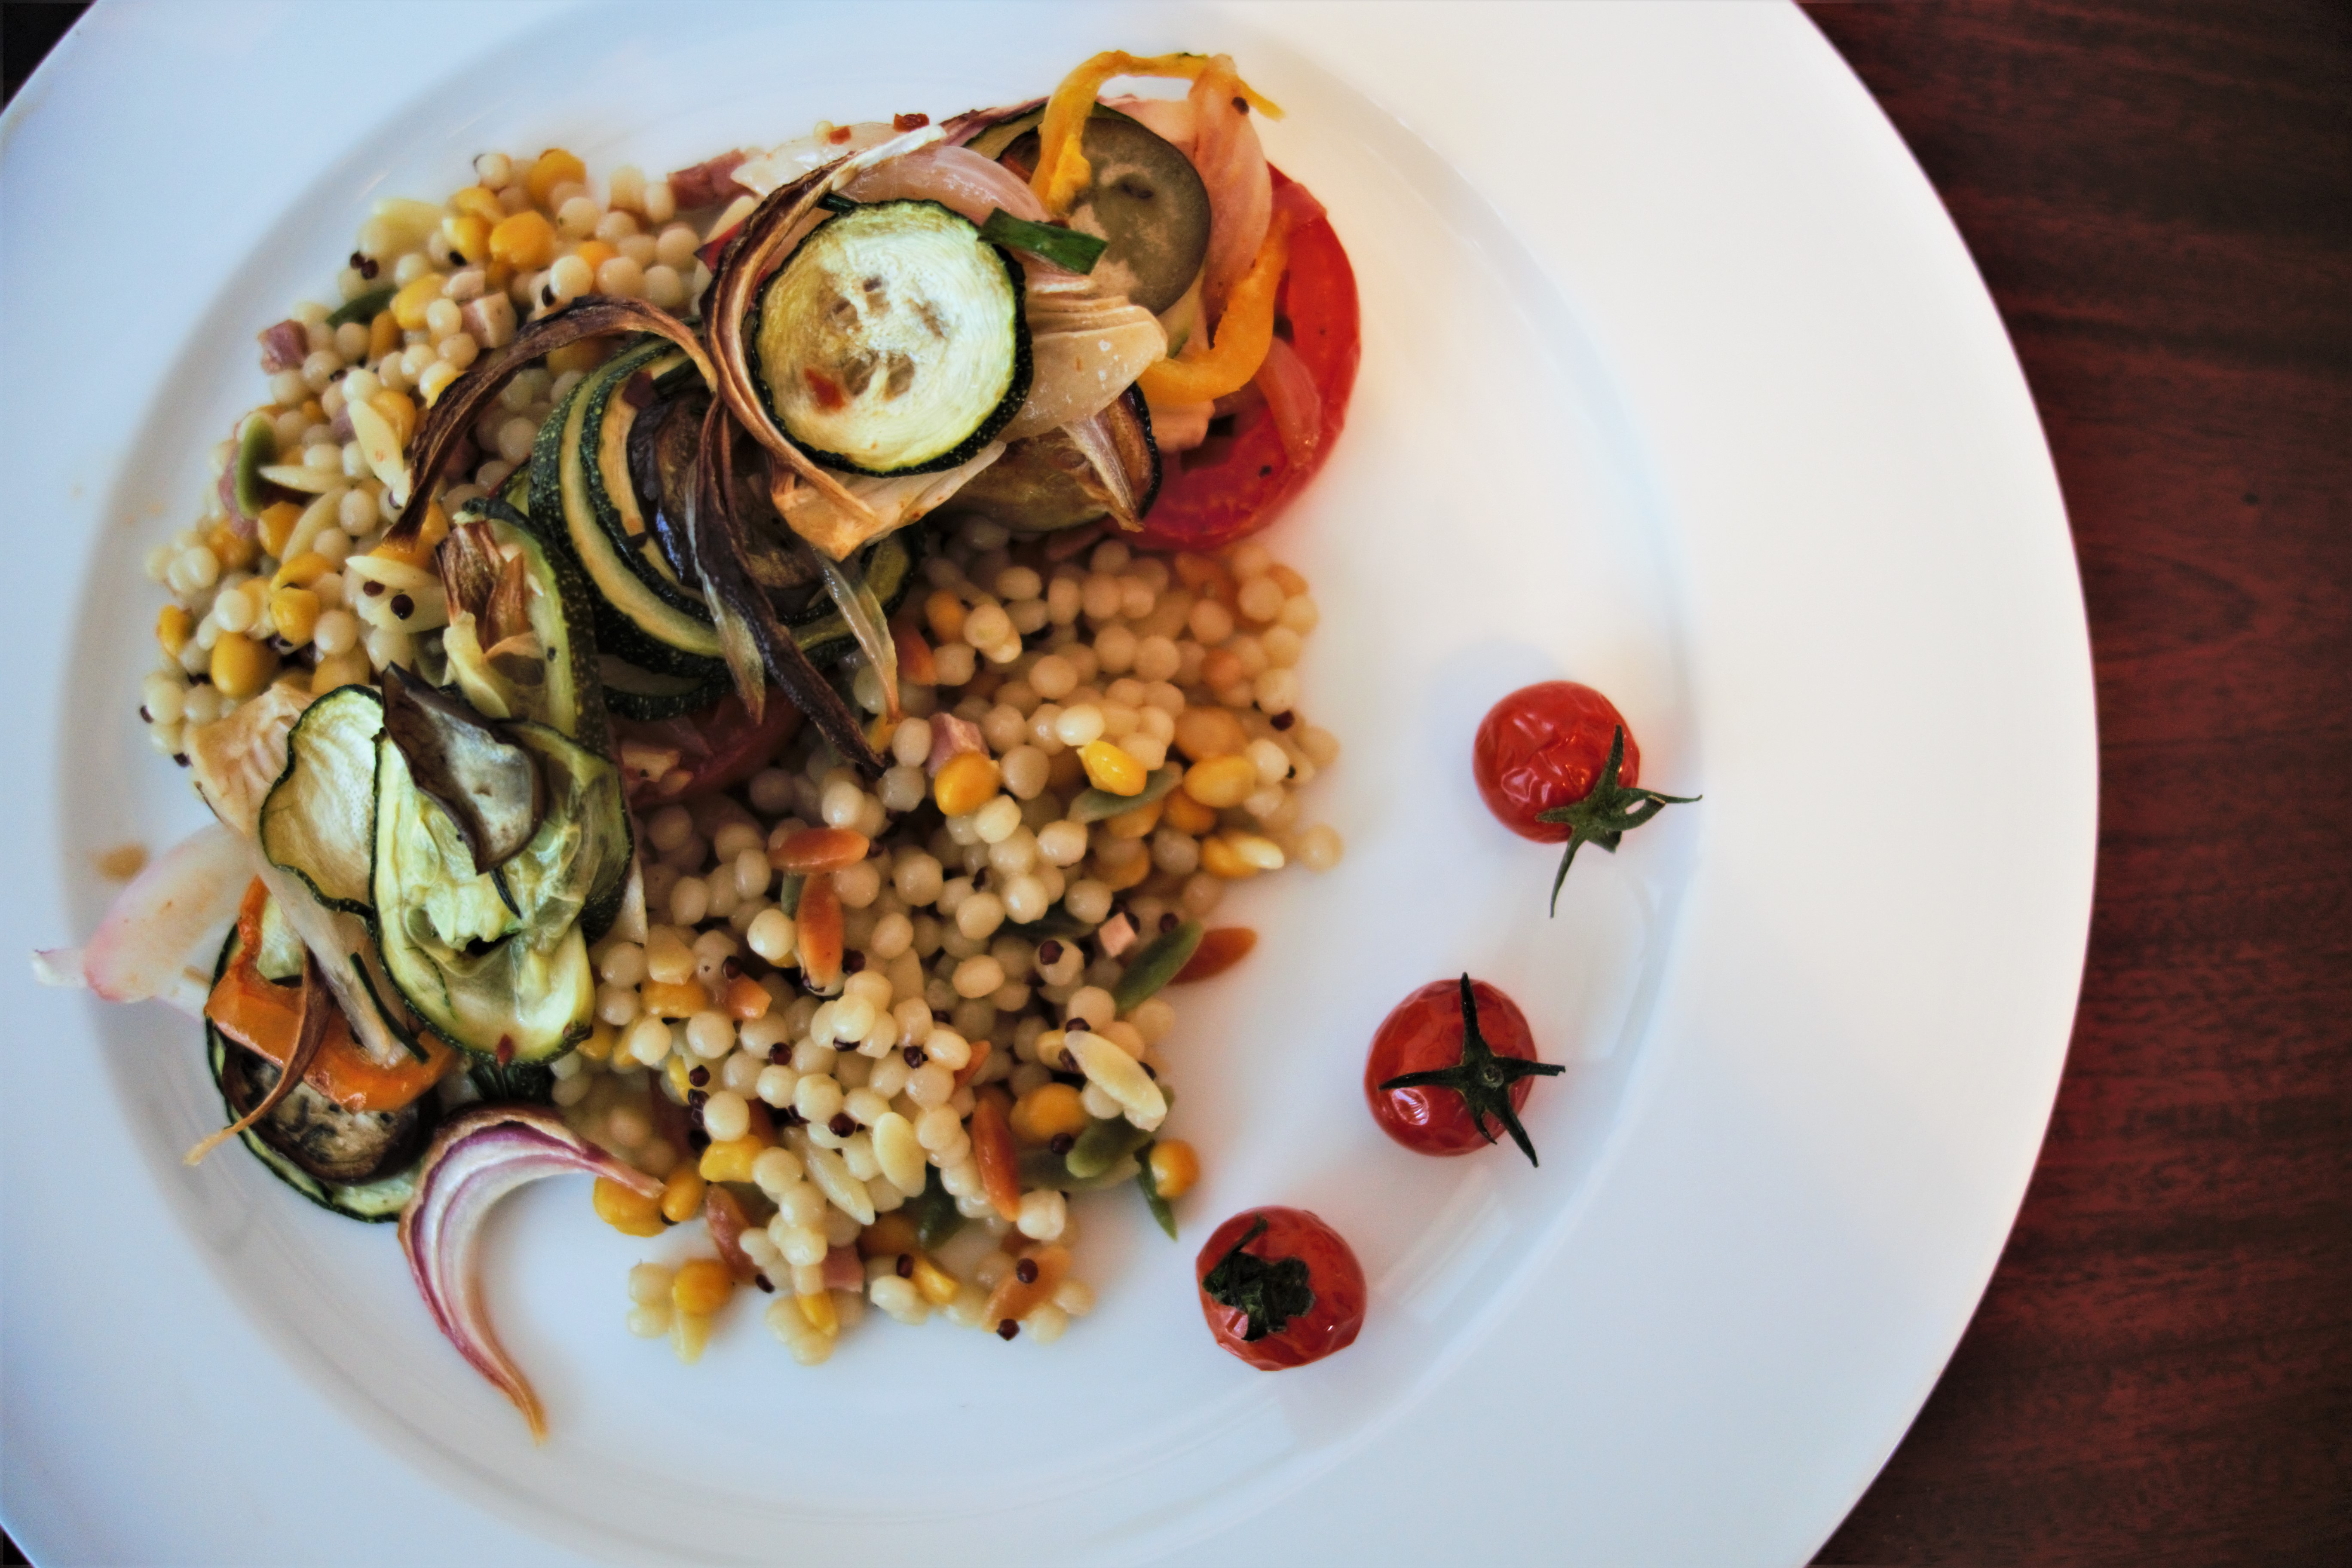 Colorful and Oven-Baked: Easy Ratatouille Recipe